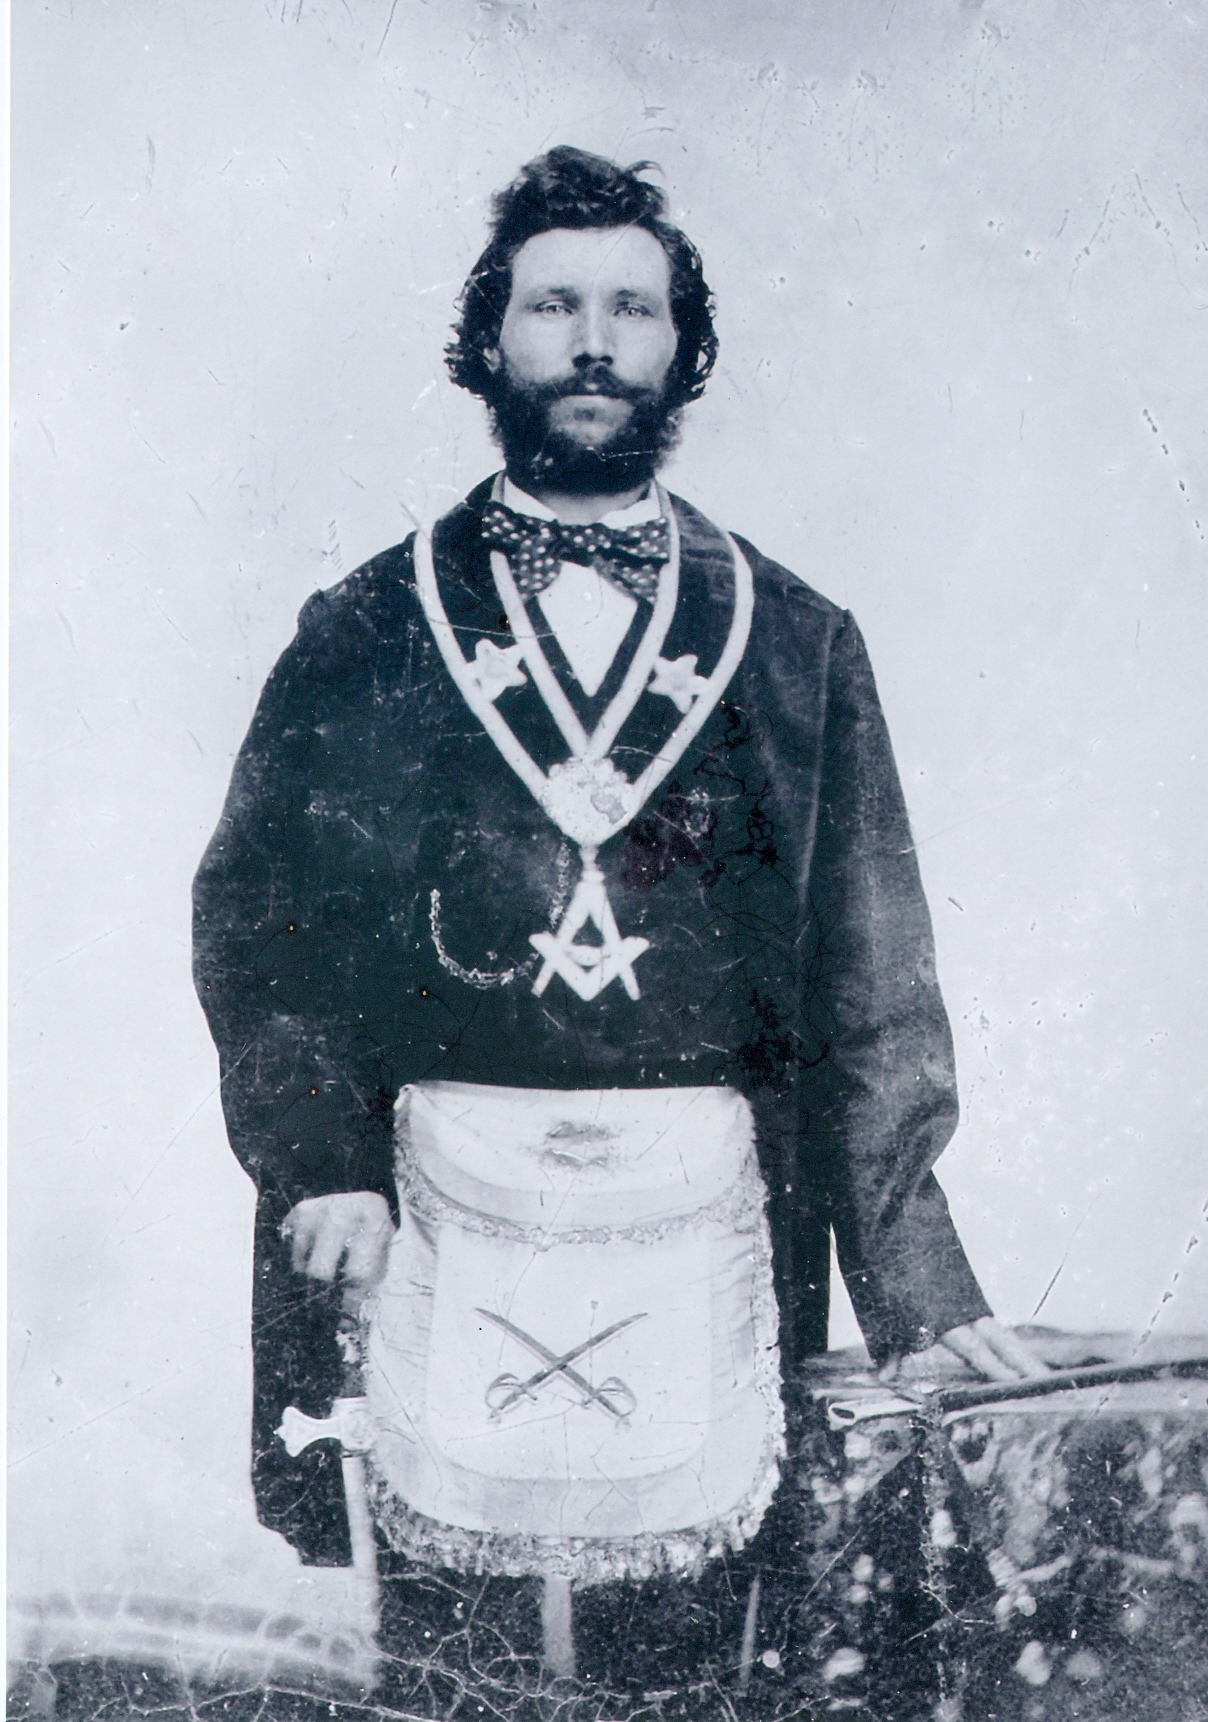 John Laskey Aunger in the regalia of Marmora Lodge No. 222 AF&AM. He served that lodge as Master seven terms and while he was Master, raised five of his sons as Master Masons. In this picture he is serving in the office of Tyler of the Lodge.